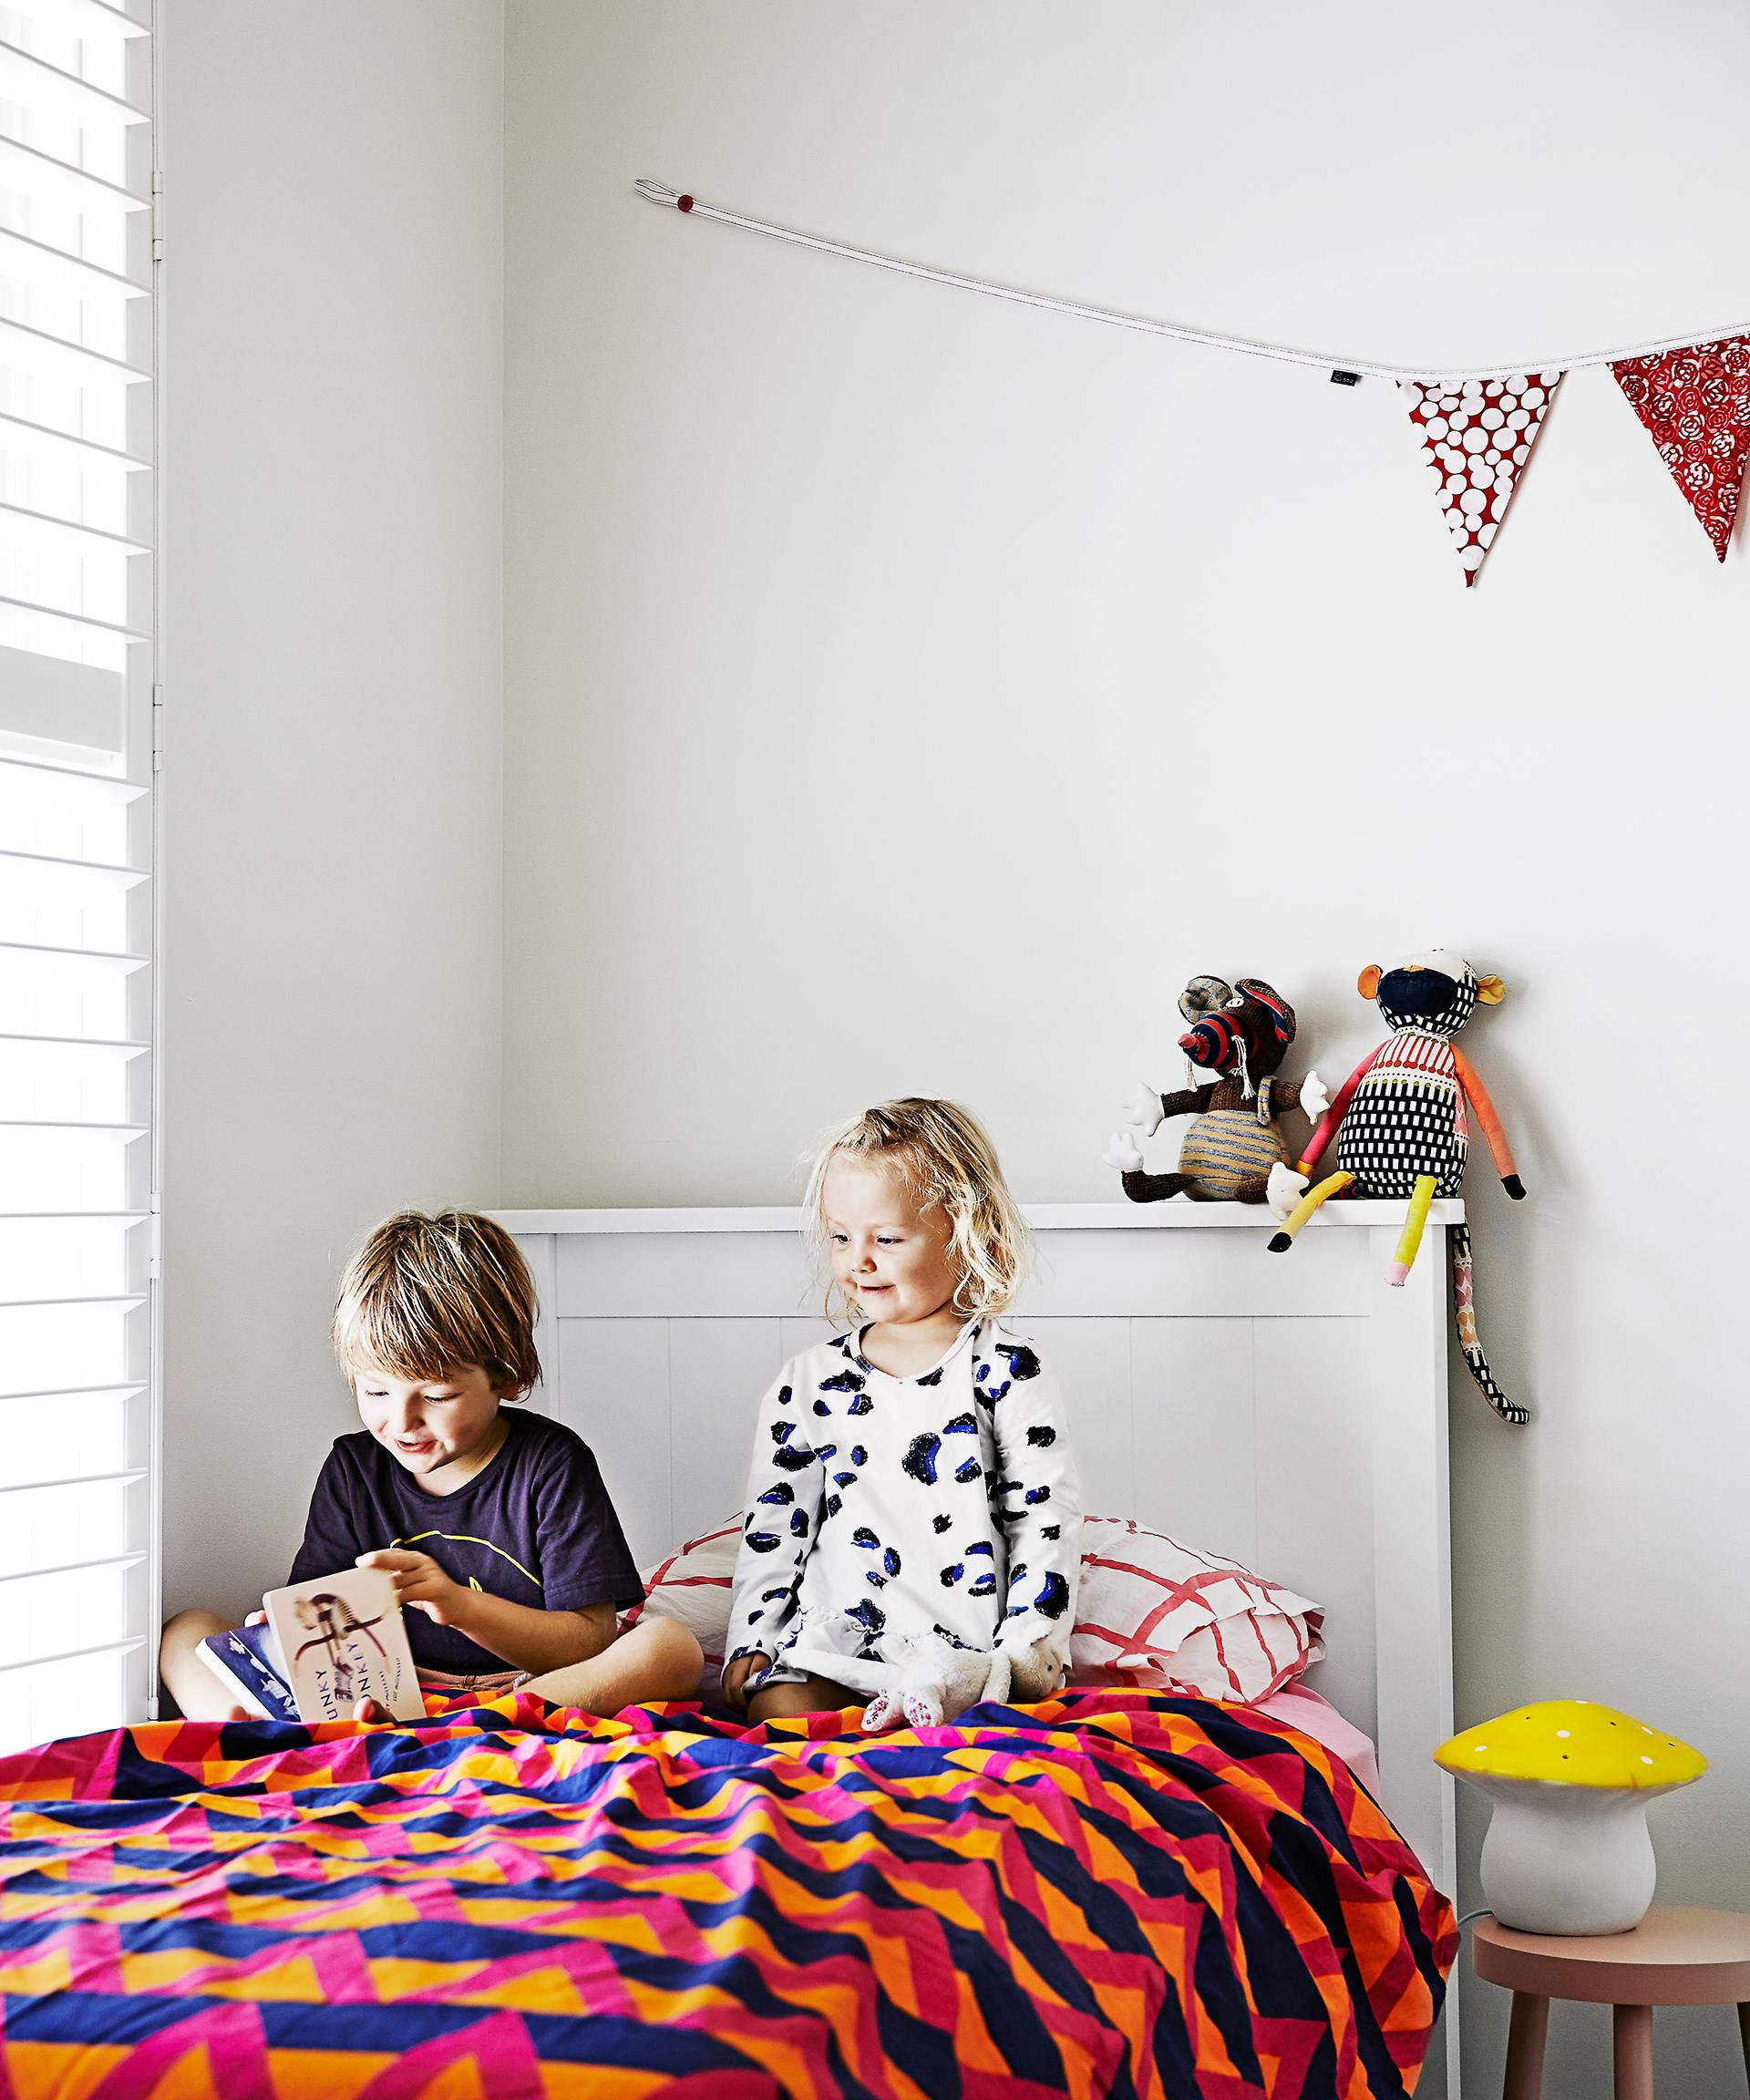 """Maelle's bright bedroom is the perfect place for reading, with the light just right for sitting down with a book. Brother and sister like to snuggle up under the colourful quilt, making this bedroom an important hangout for the kids in [Aussie Olympian Johanna Lyle's home](http://www.homestolove.com.au/aussie-olympian-wins-gold-on-home-reno-2959